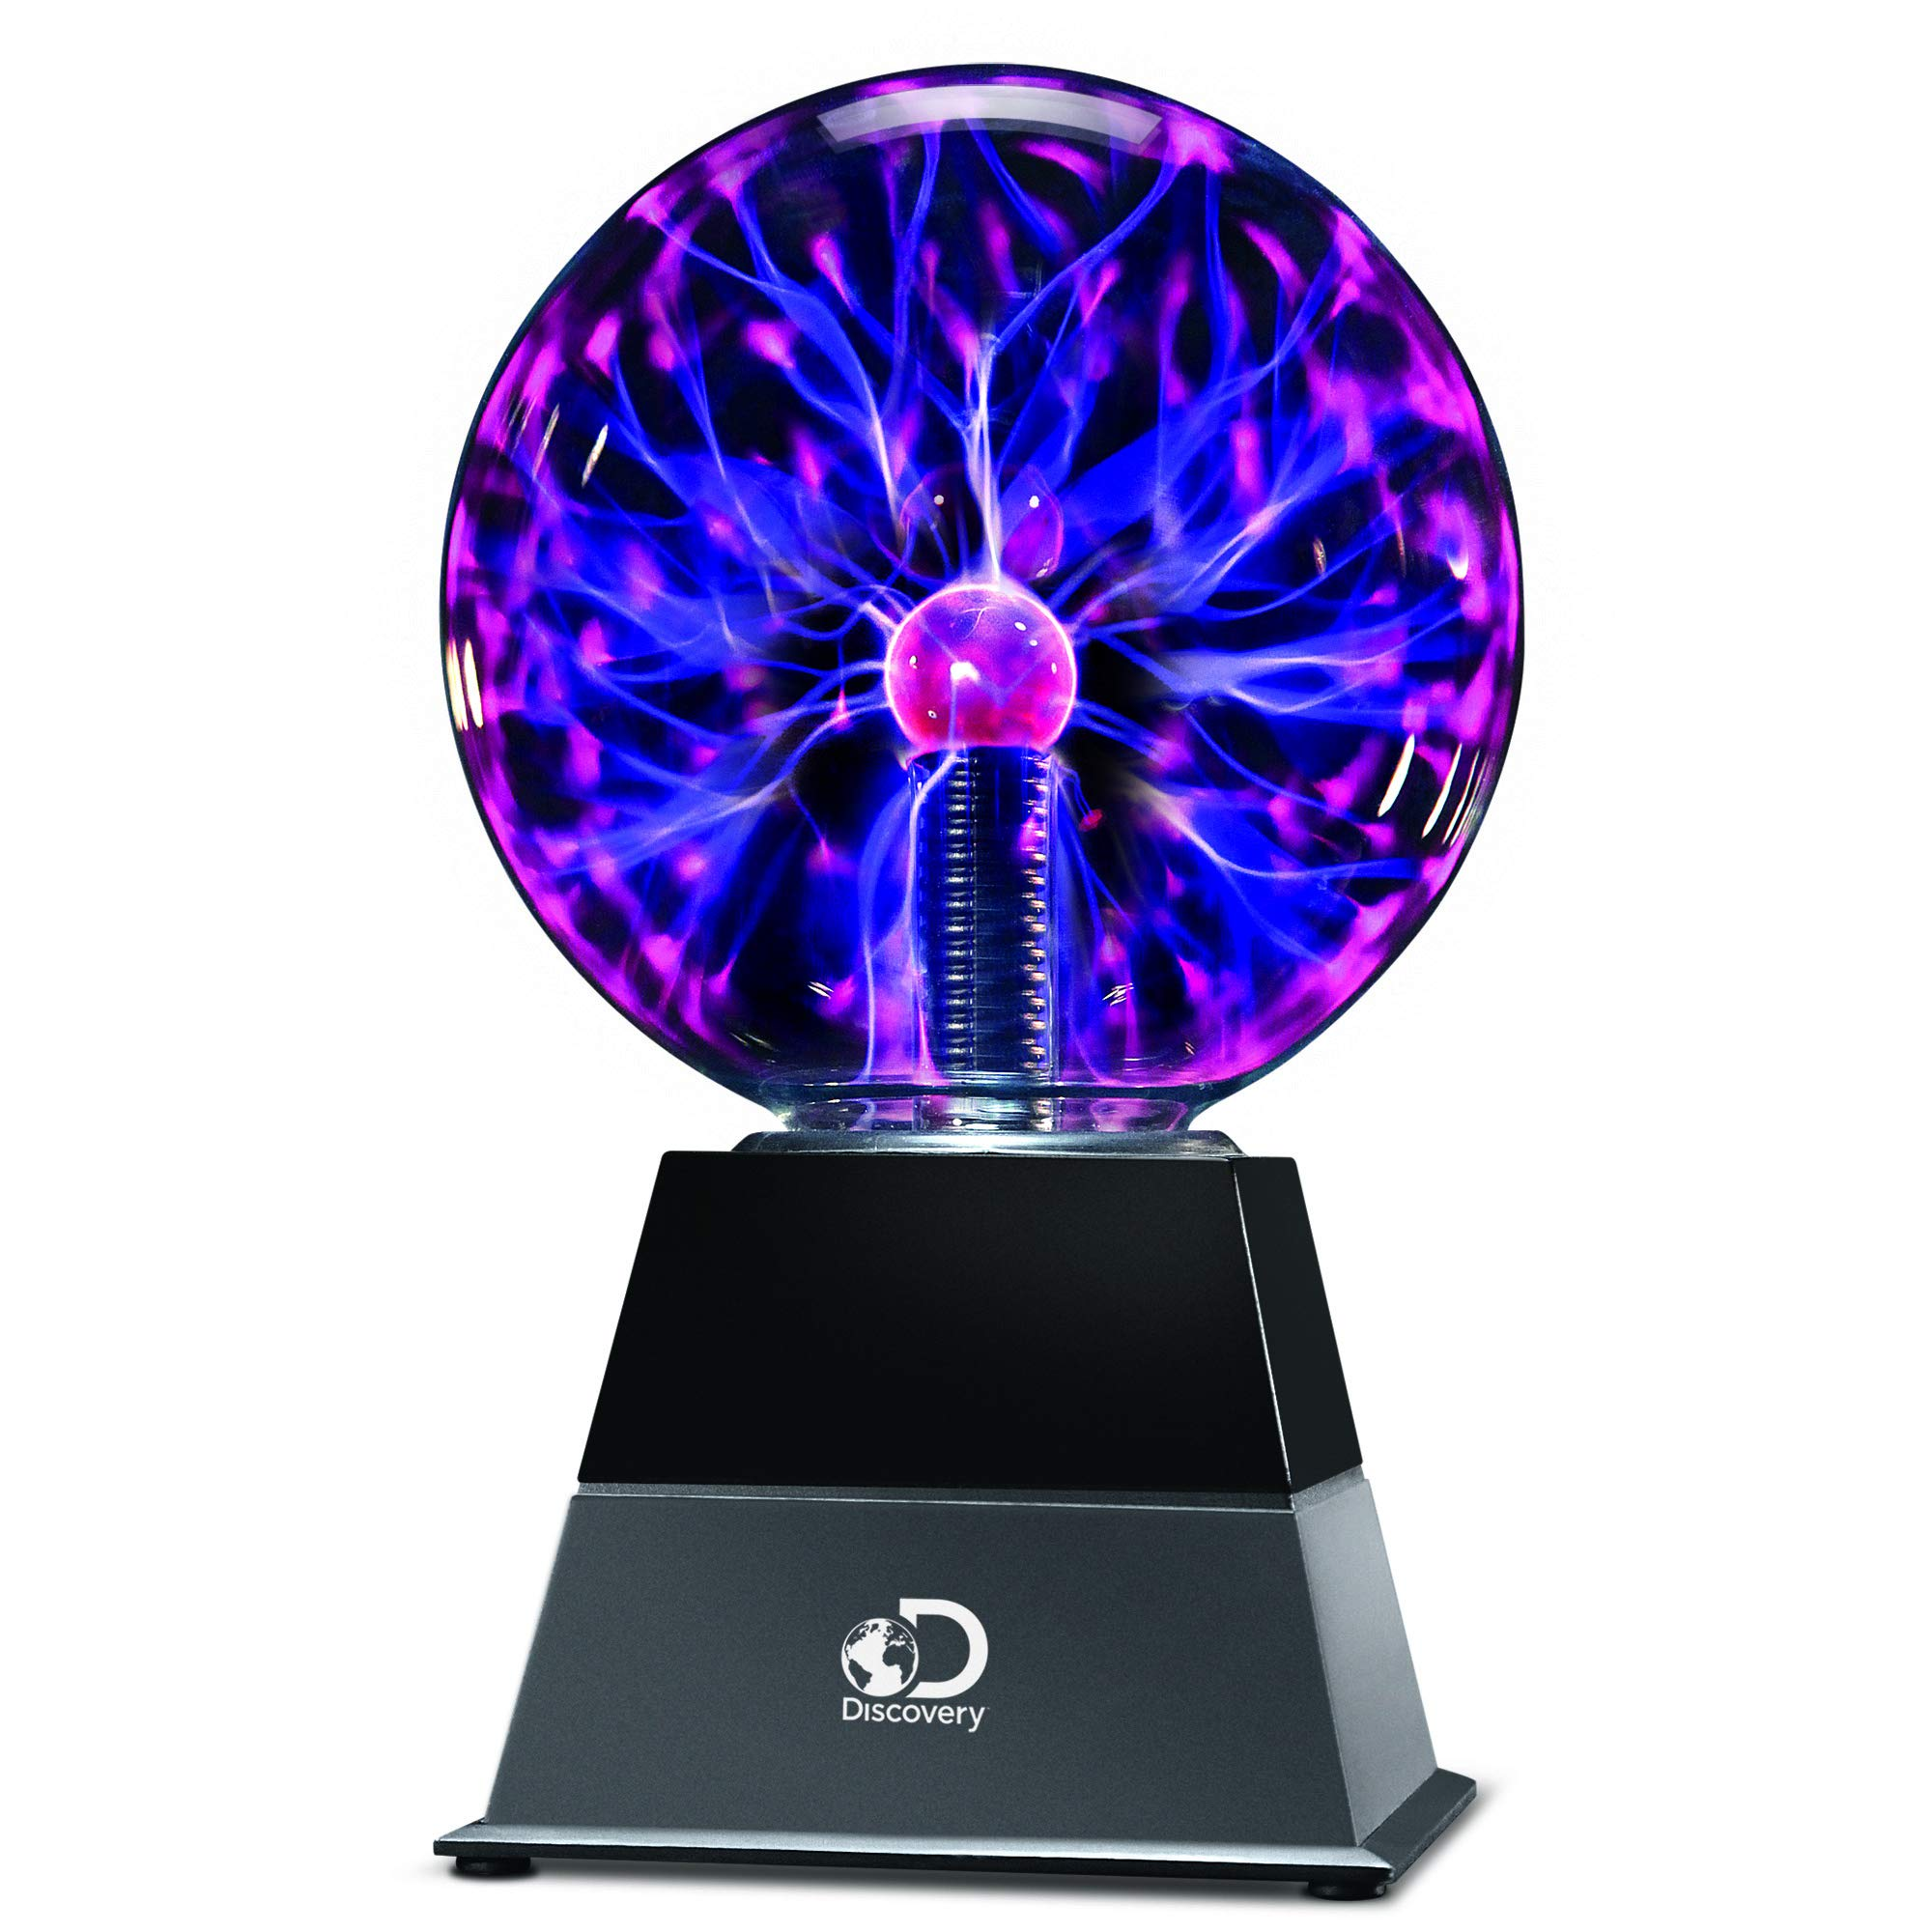 Discovery Kids 6'' Plasma Globe Lamp with Interactive Electronic Touch and Sound Sensitive Lightning and Tesla Coil, Includes AC Adapter, Glass STEM Lava Lamp-Style Light for Desk, Kids Room, and More by Discovery Kids